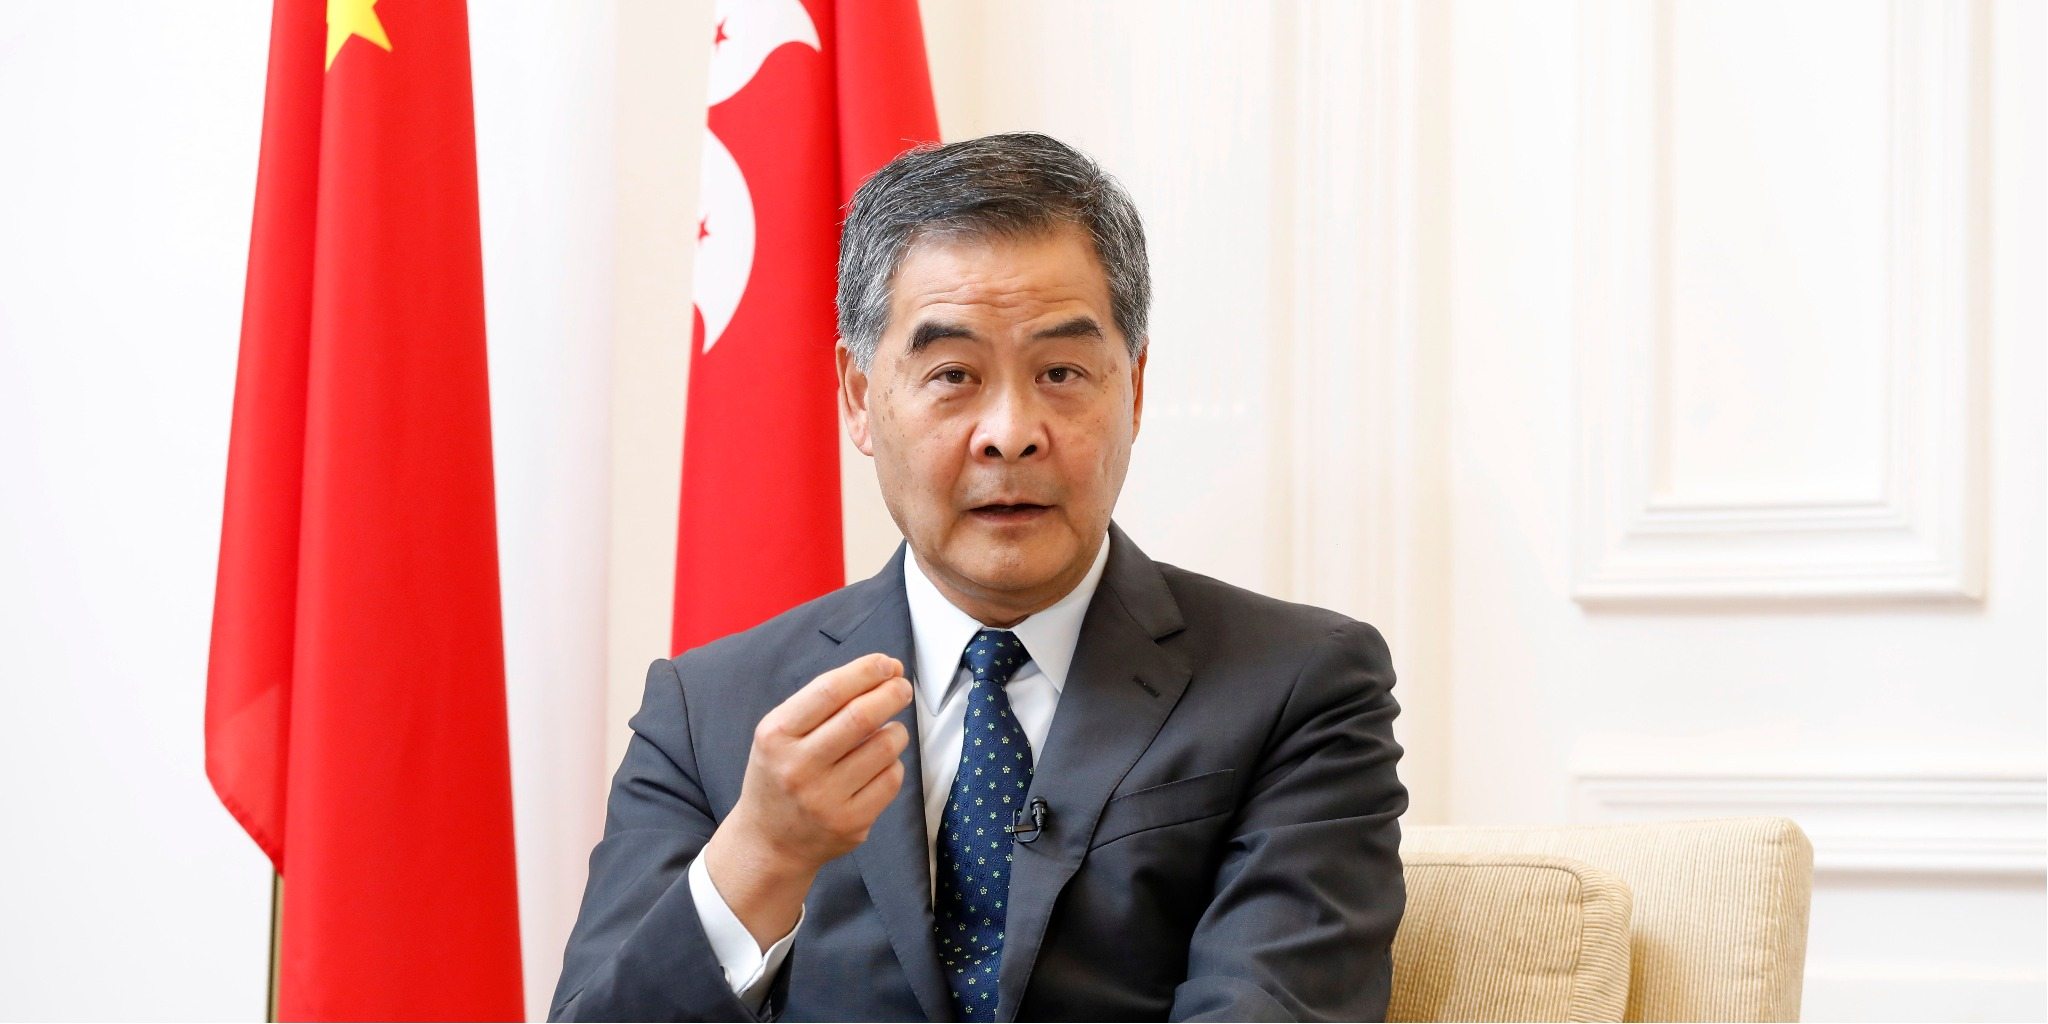 CY Leung: Media organizations cannot override laws